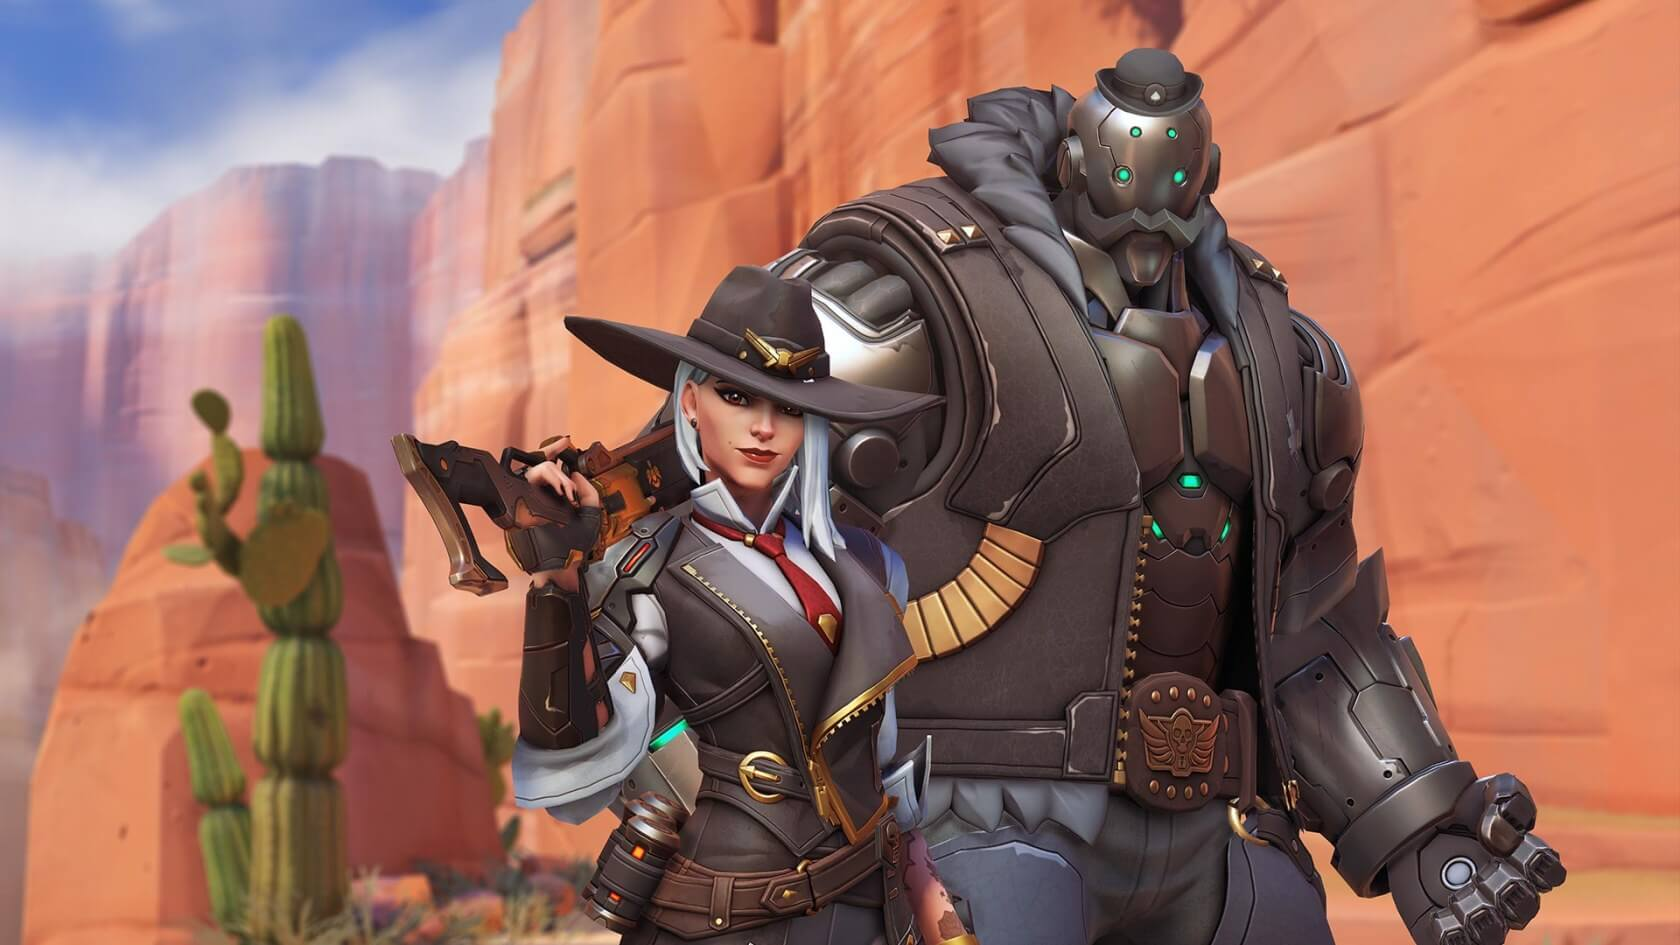 Overwatch Hero 29 Ashe announced in new Reunion animated short